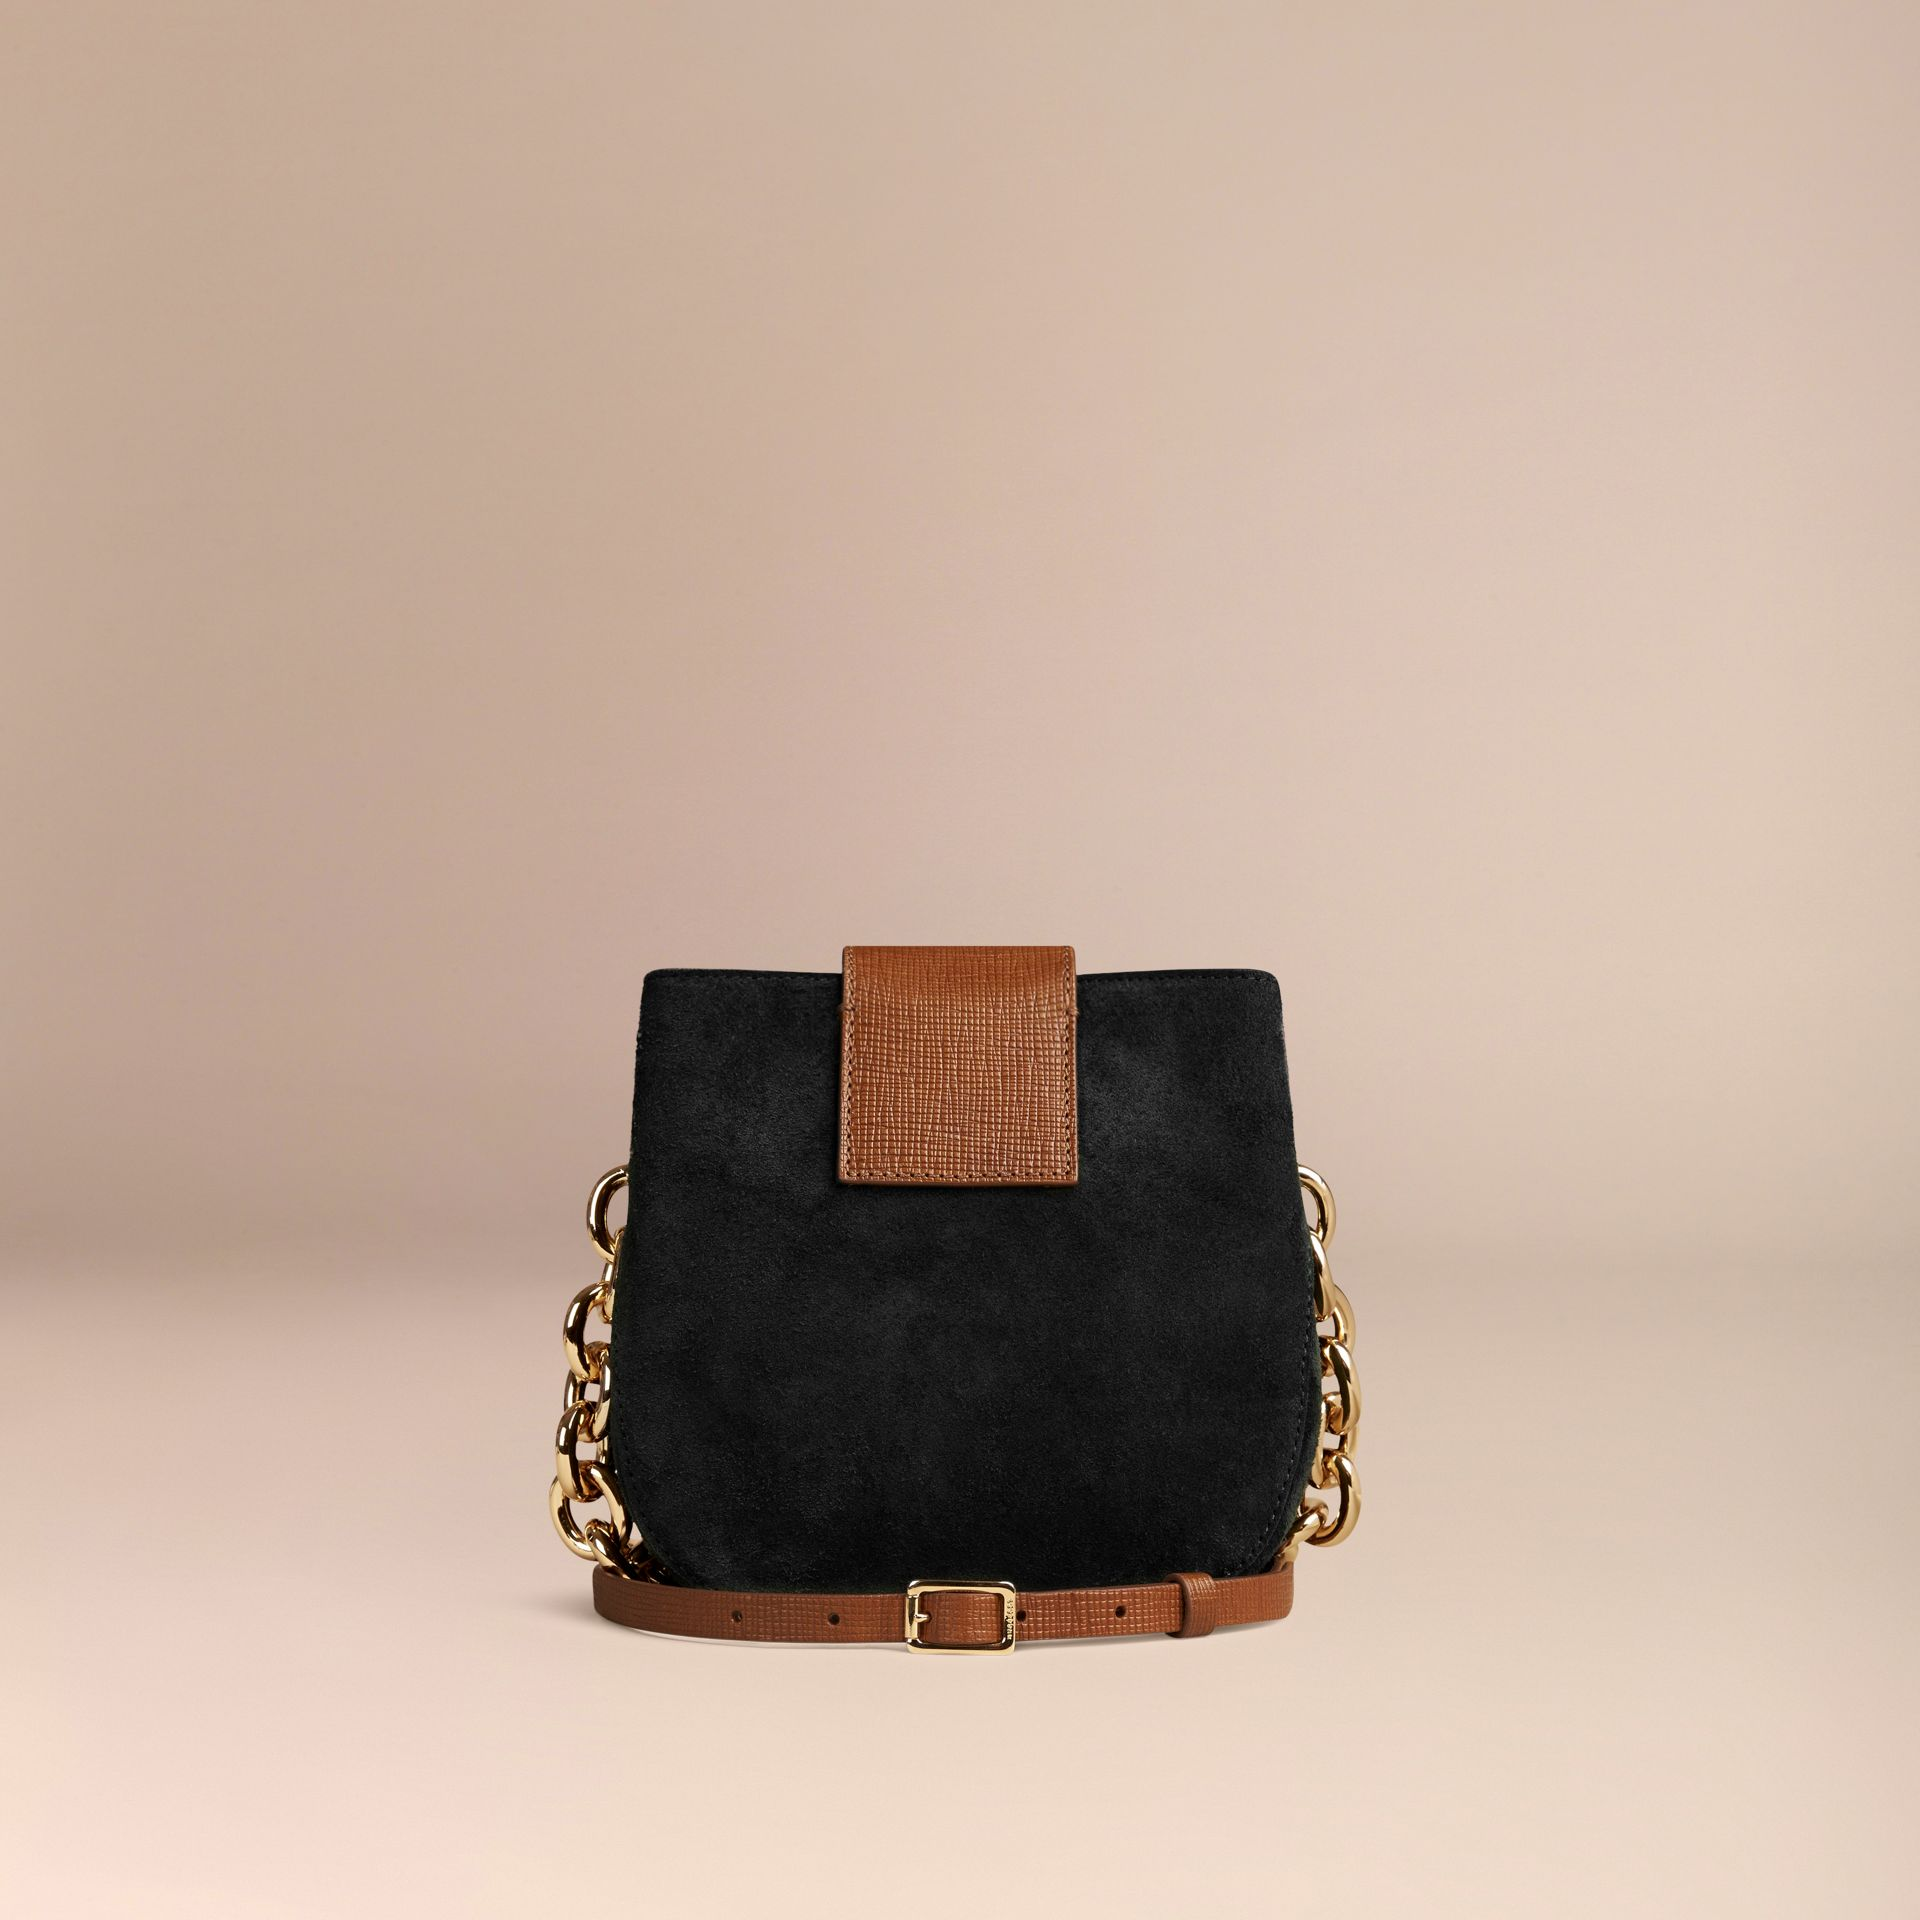 Black The Small Square Buckle Bag in English Suede and House Check - gallery image 4